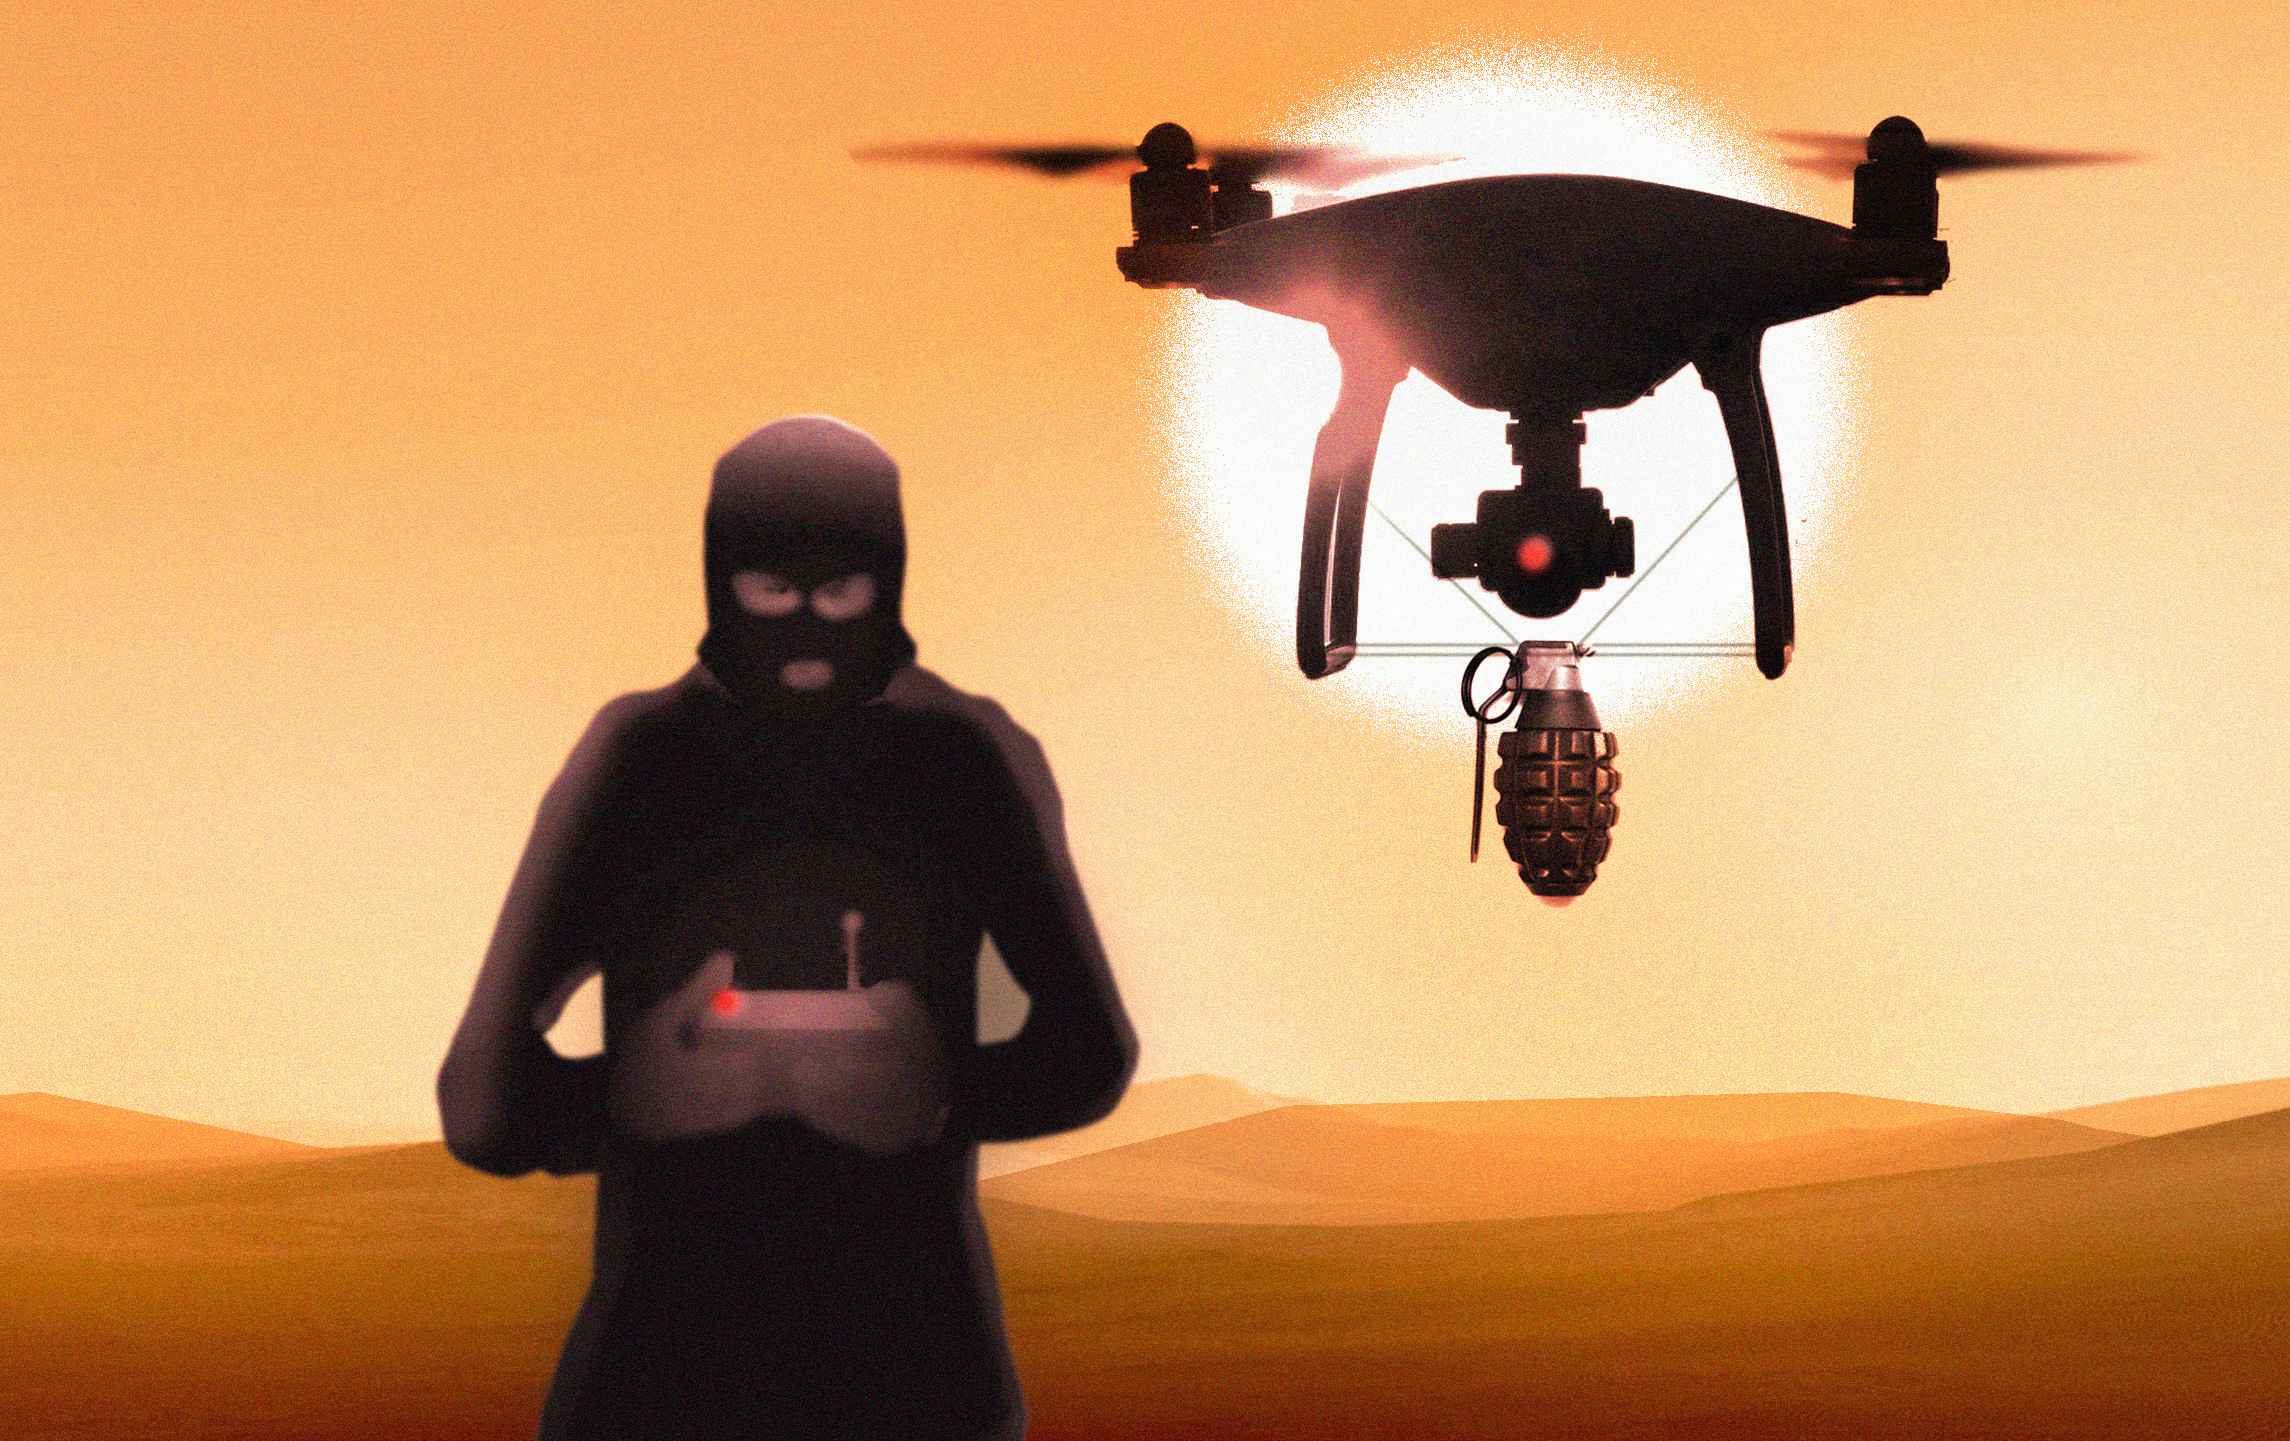 Guess who has drones now? ISIS.